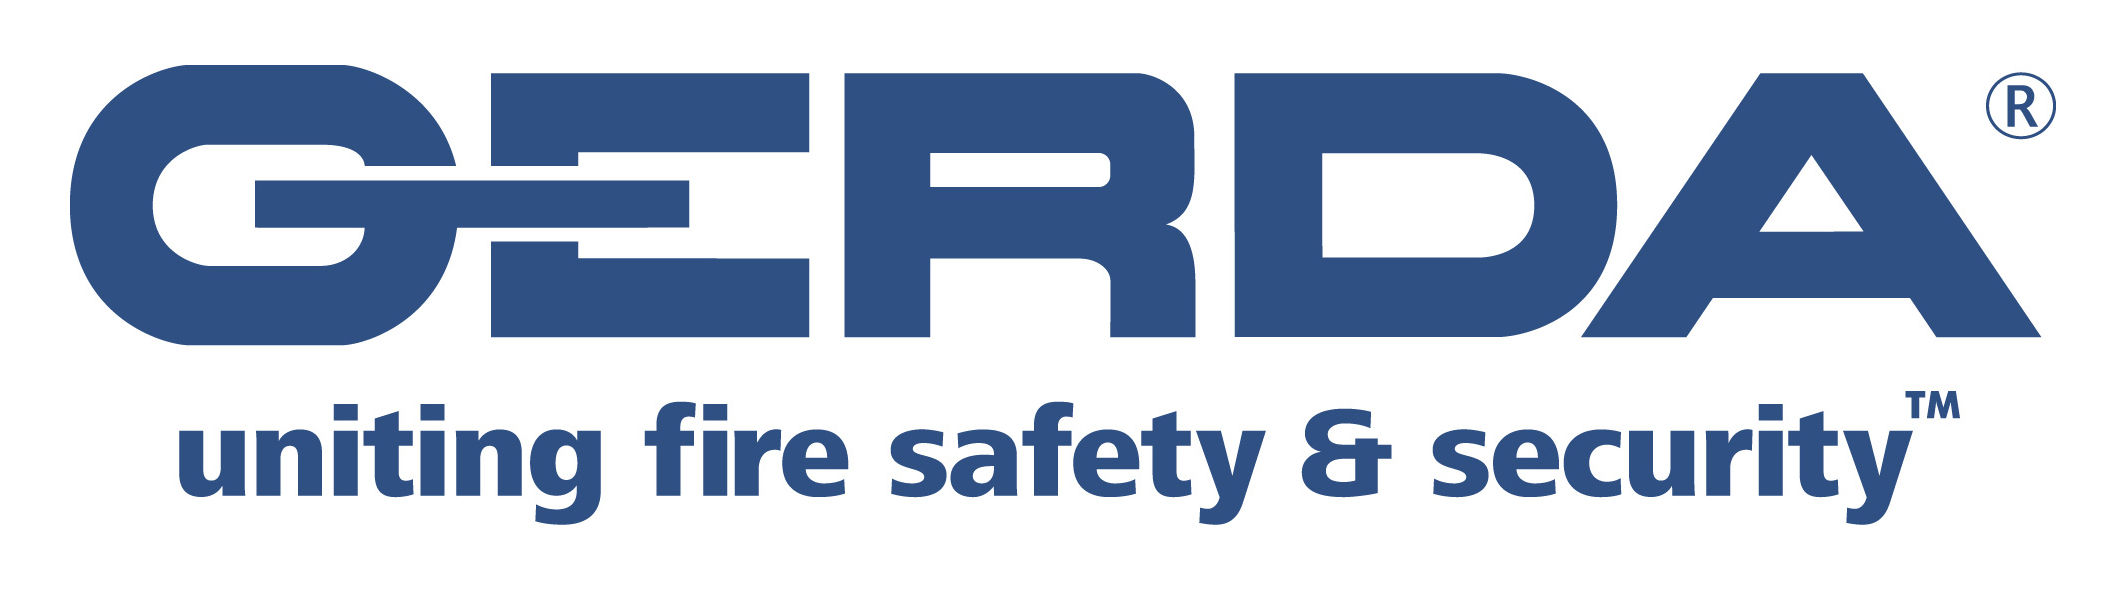 Gerda Fire Safety And Security Products